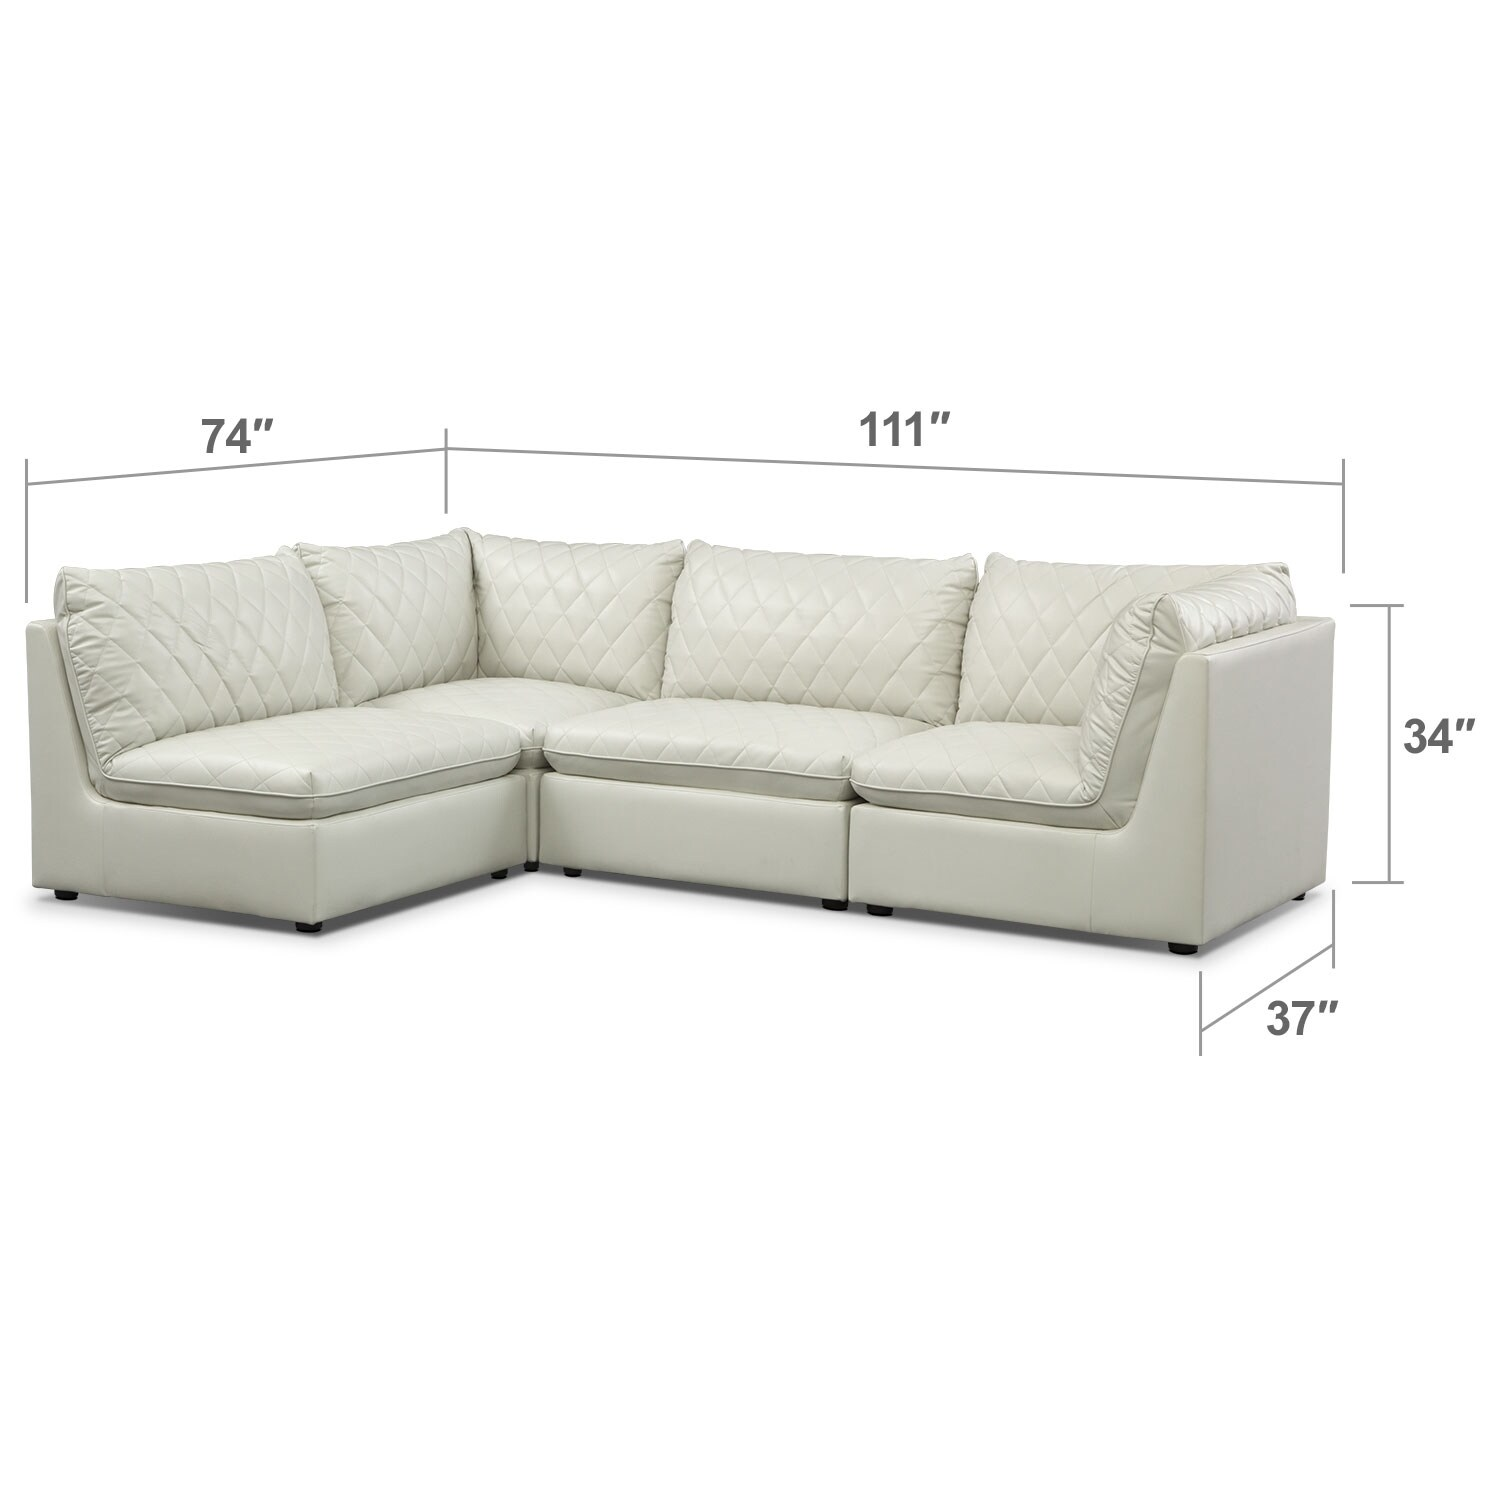 Living Room Furniture - Coco 4-Piece Sectional - Mist